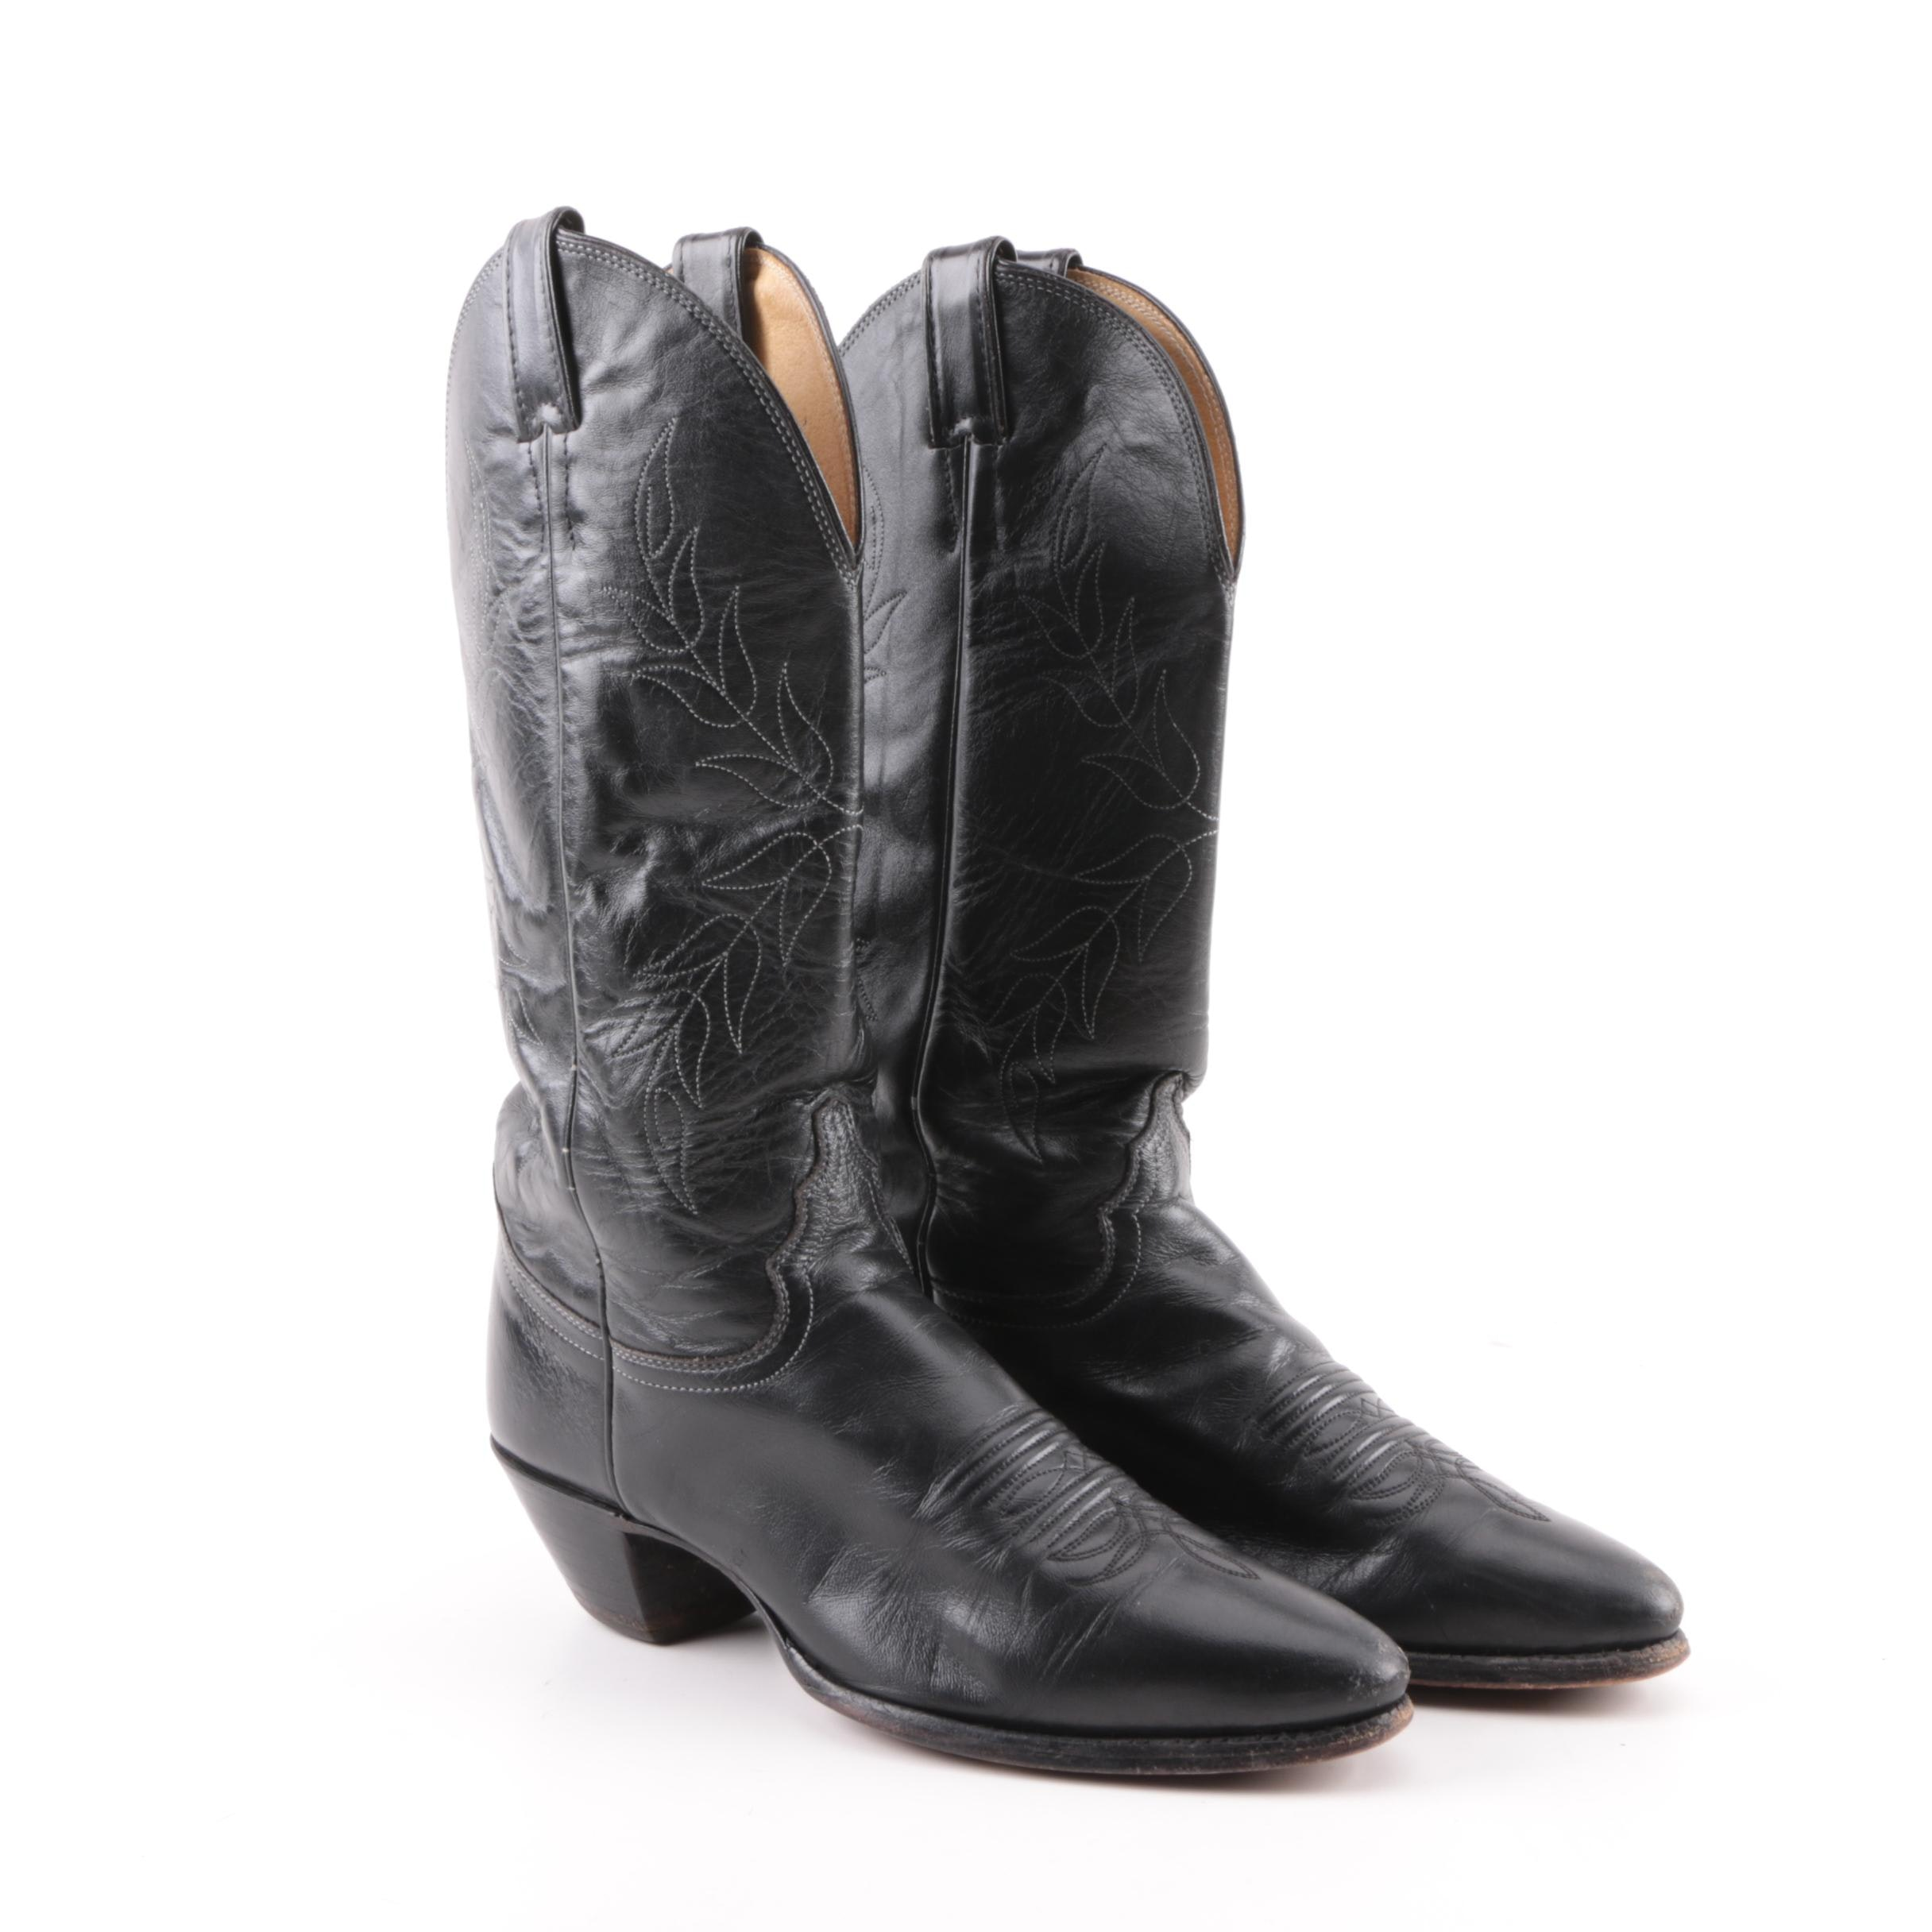 Women's Justin Black Leather Cowboy Boots with Embroidery